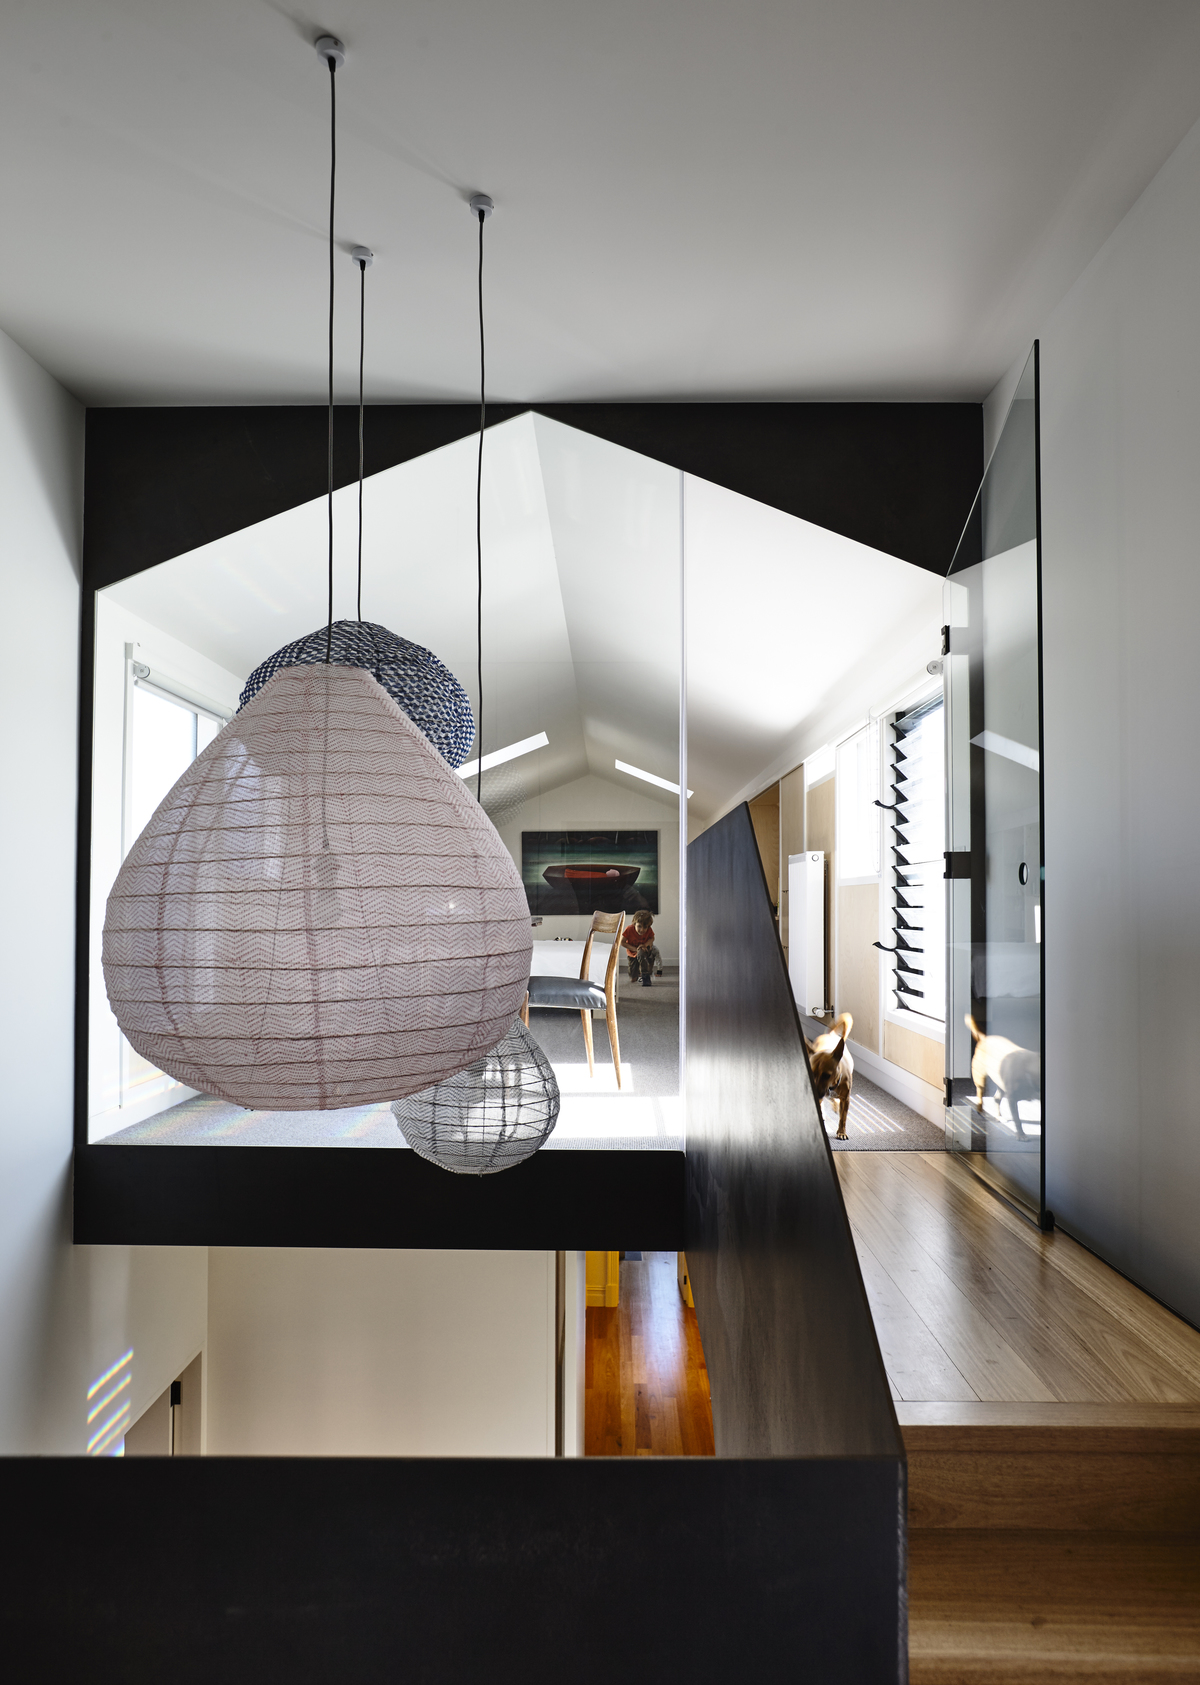 a dwelling project with wooden addition by ola studio 11 a dwelling project with wooden addition by Ola Studio